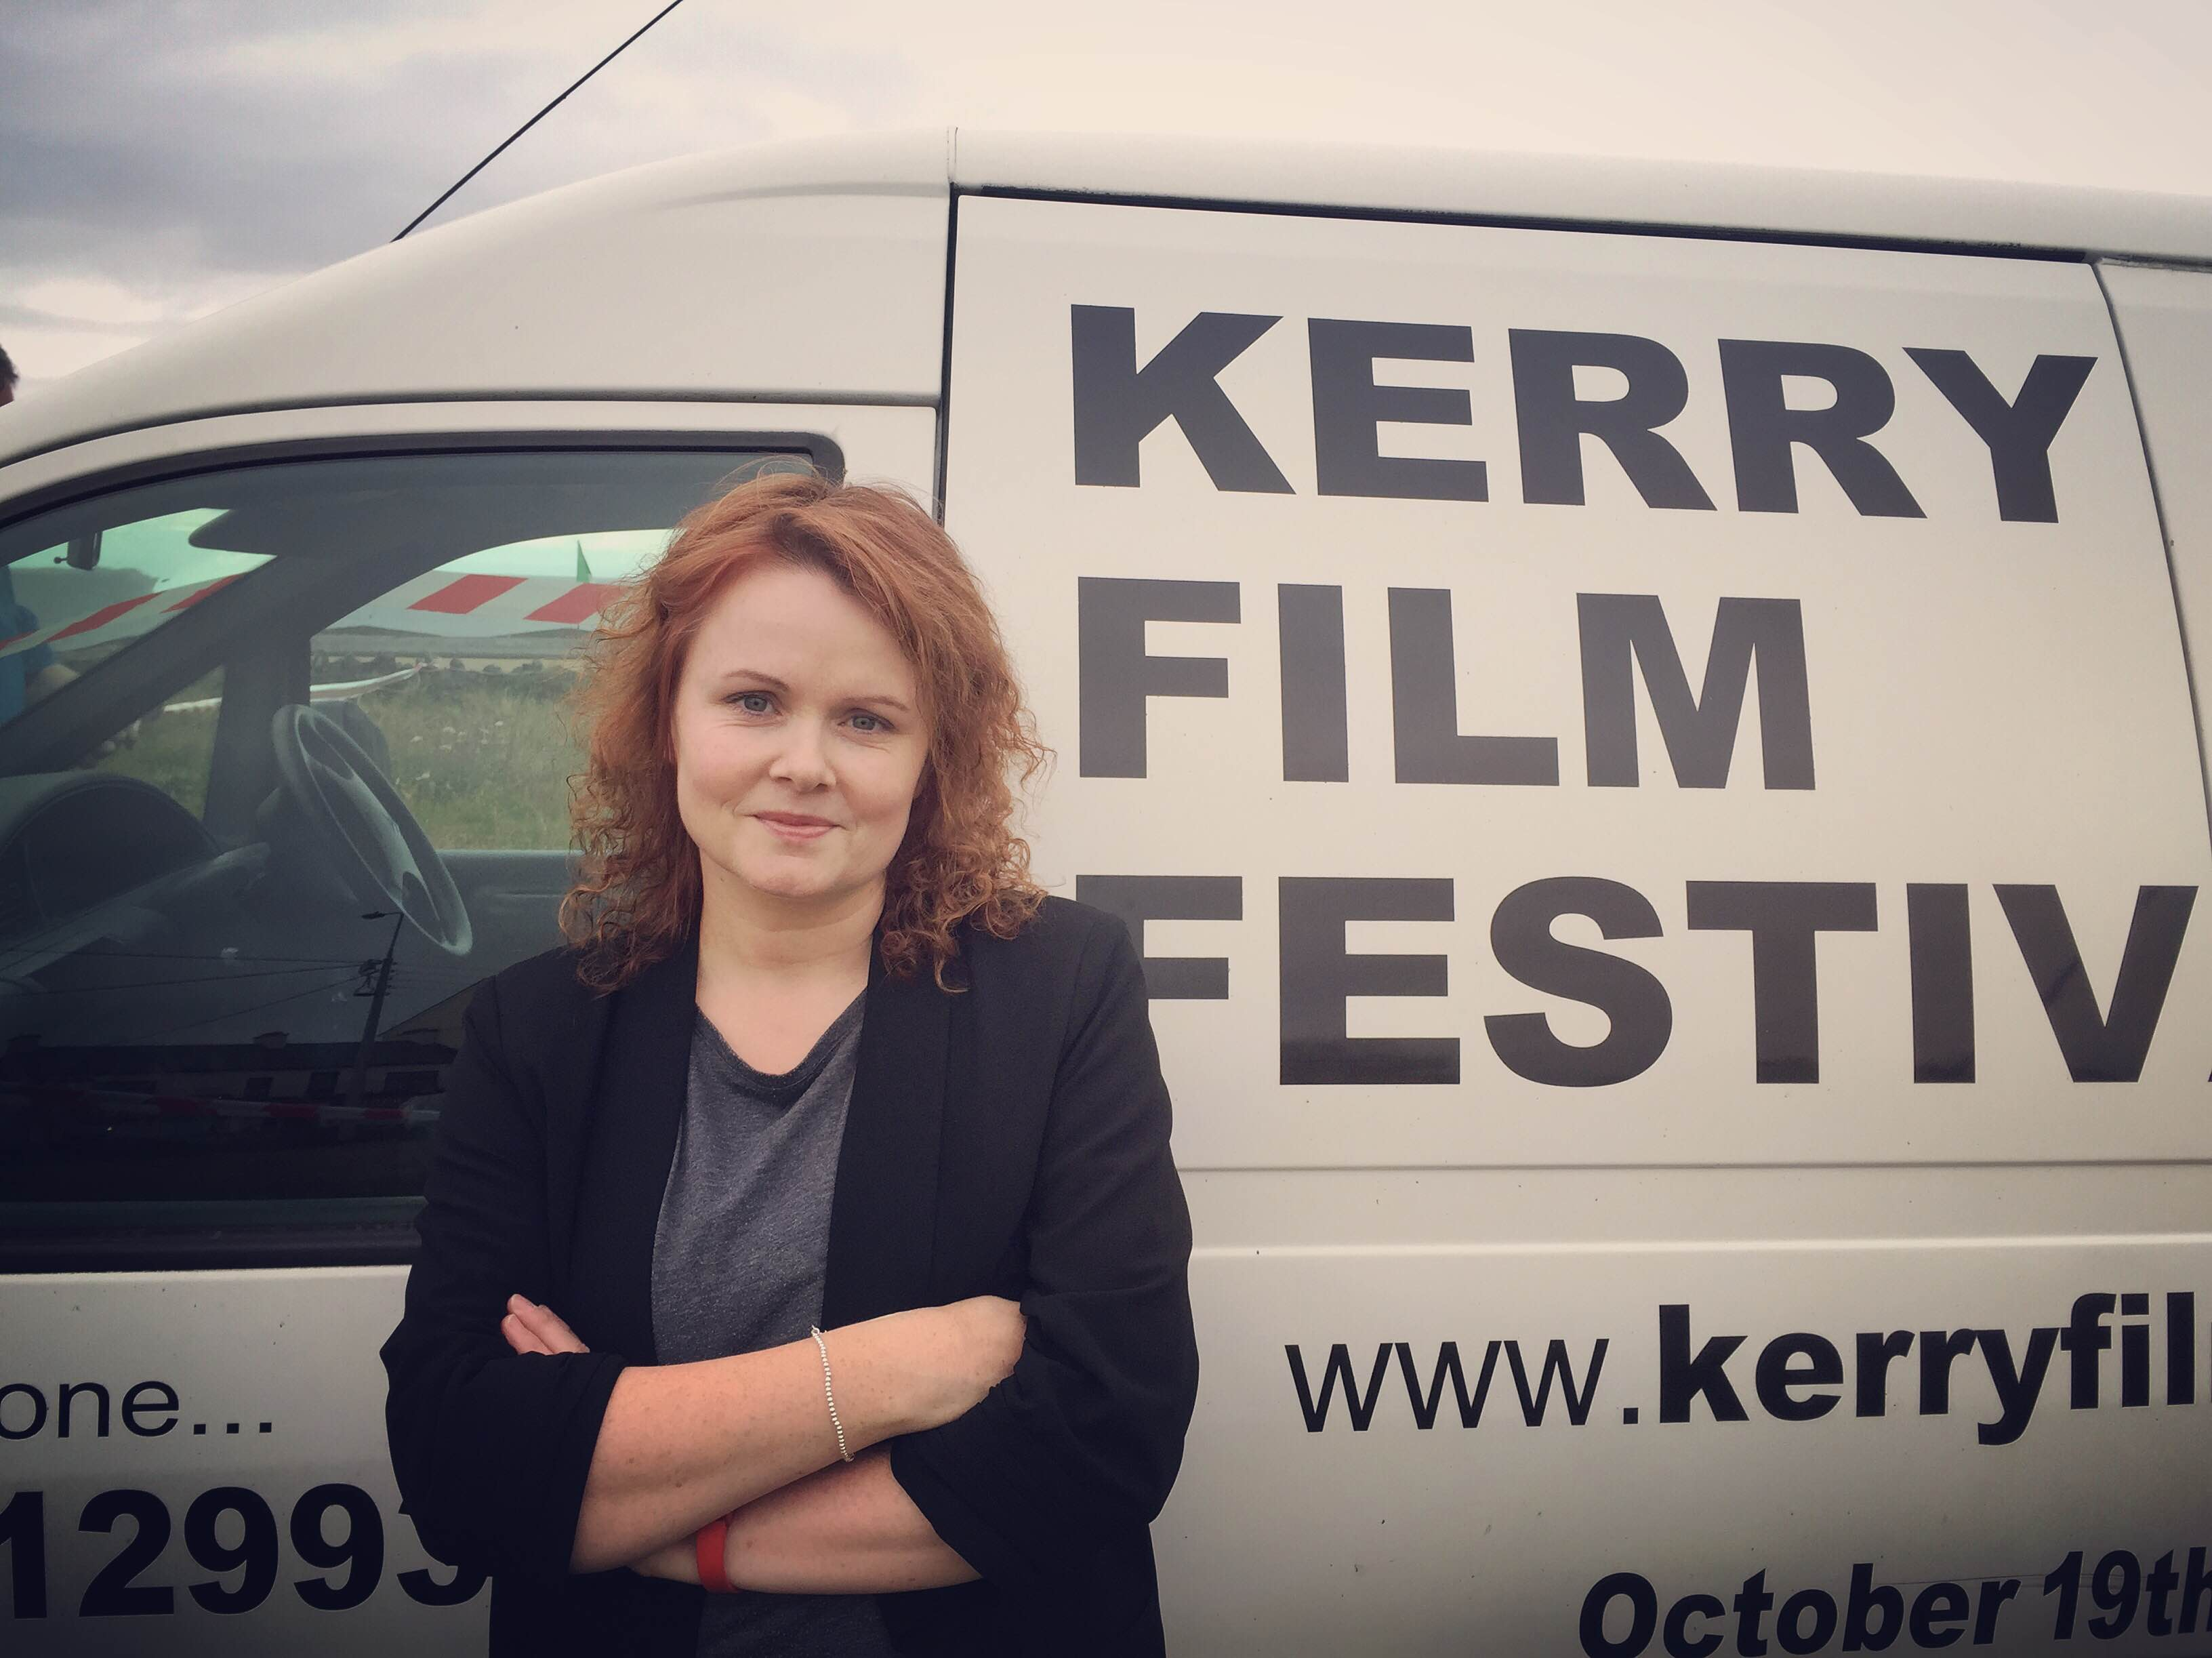 Maeve McGrath, Kerry film festival 2016